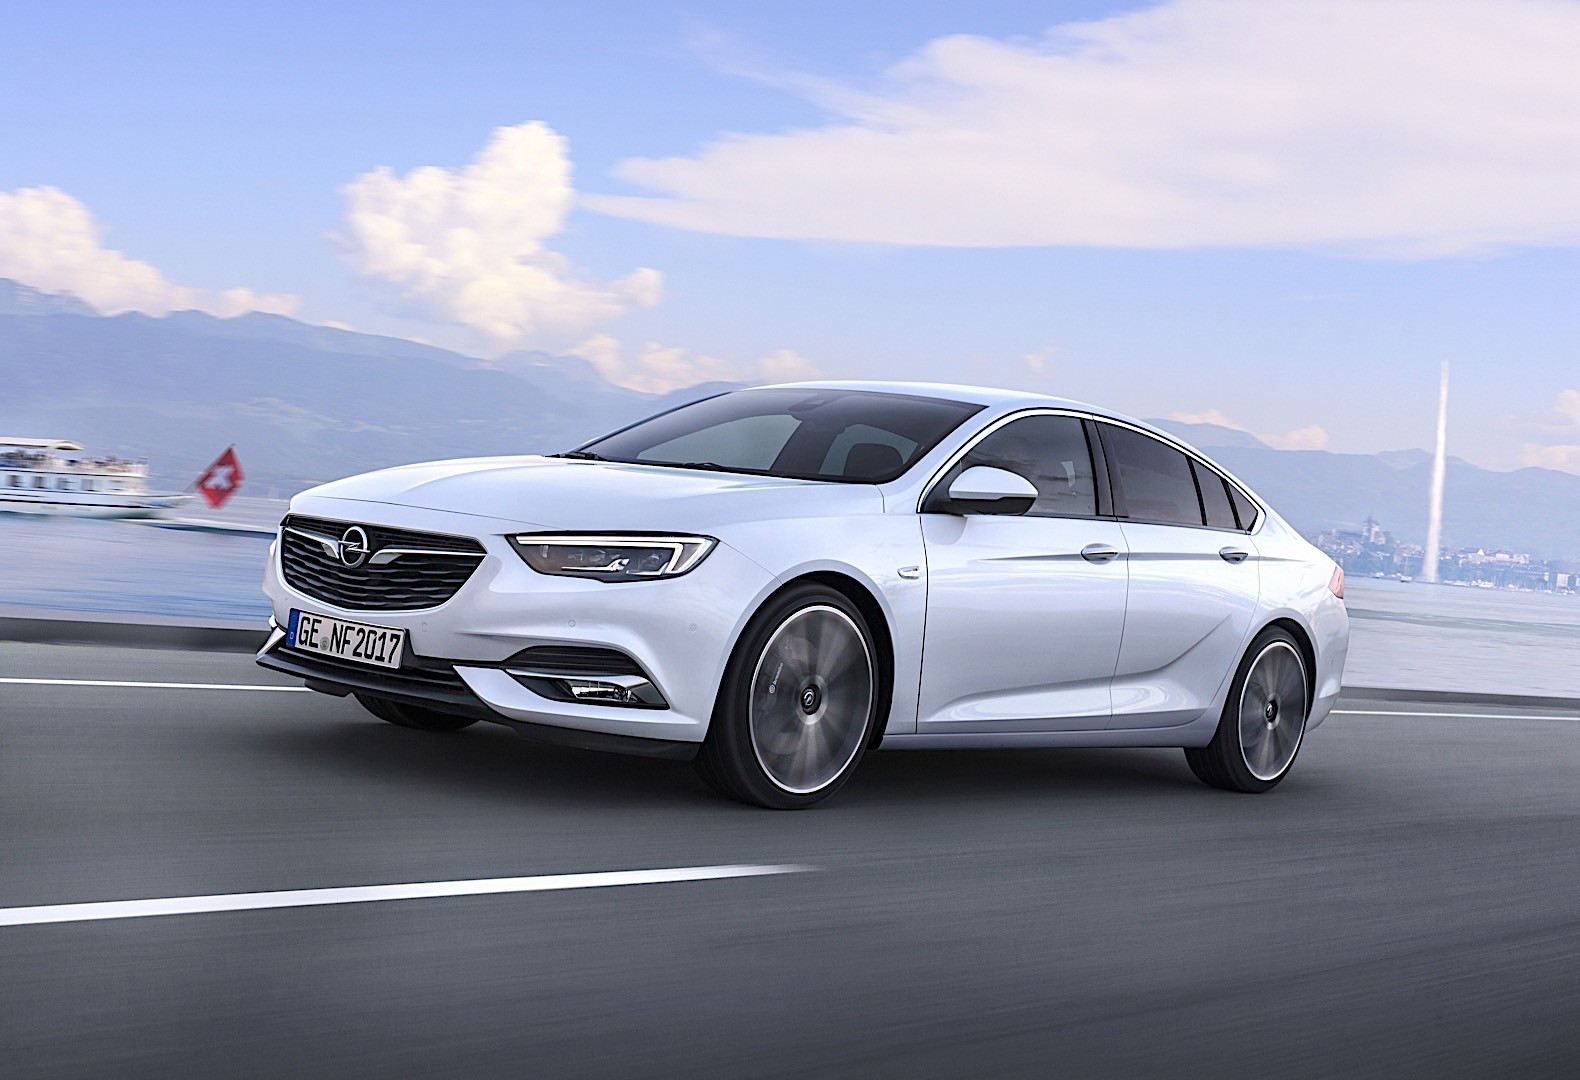 opel insignia grand sport specs 2017 2018 autoevolution. Black Bedroom Furniture Sets. Home Design Ideas